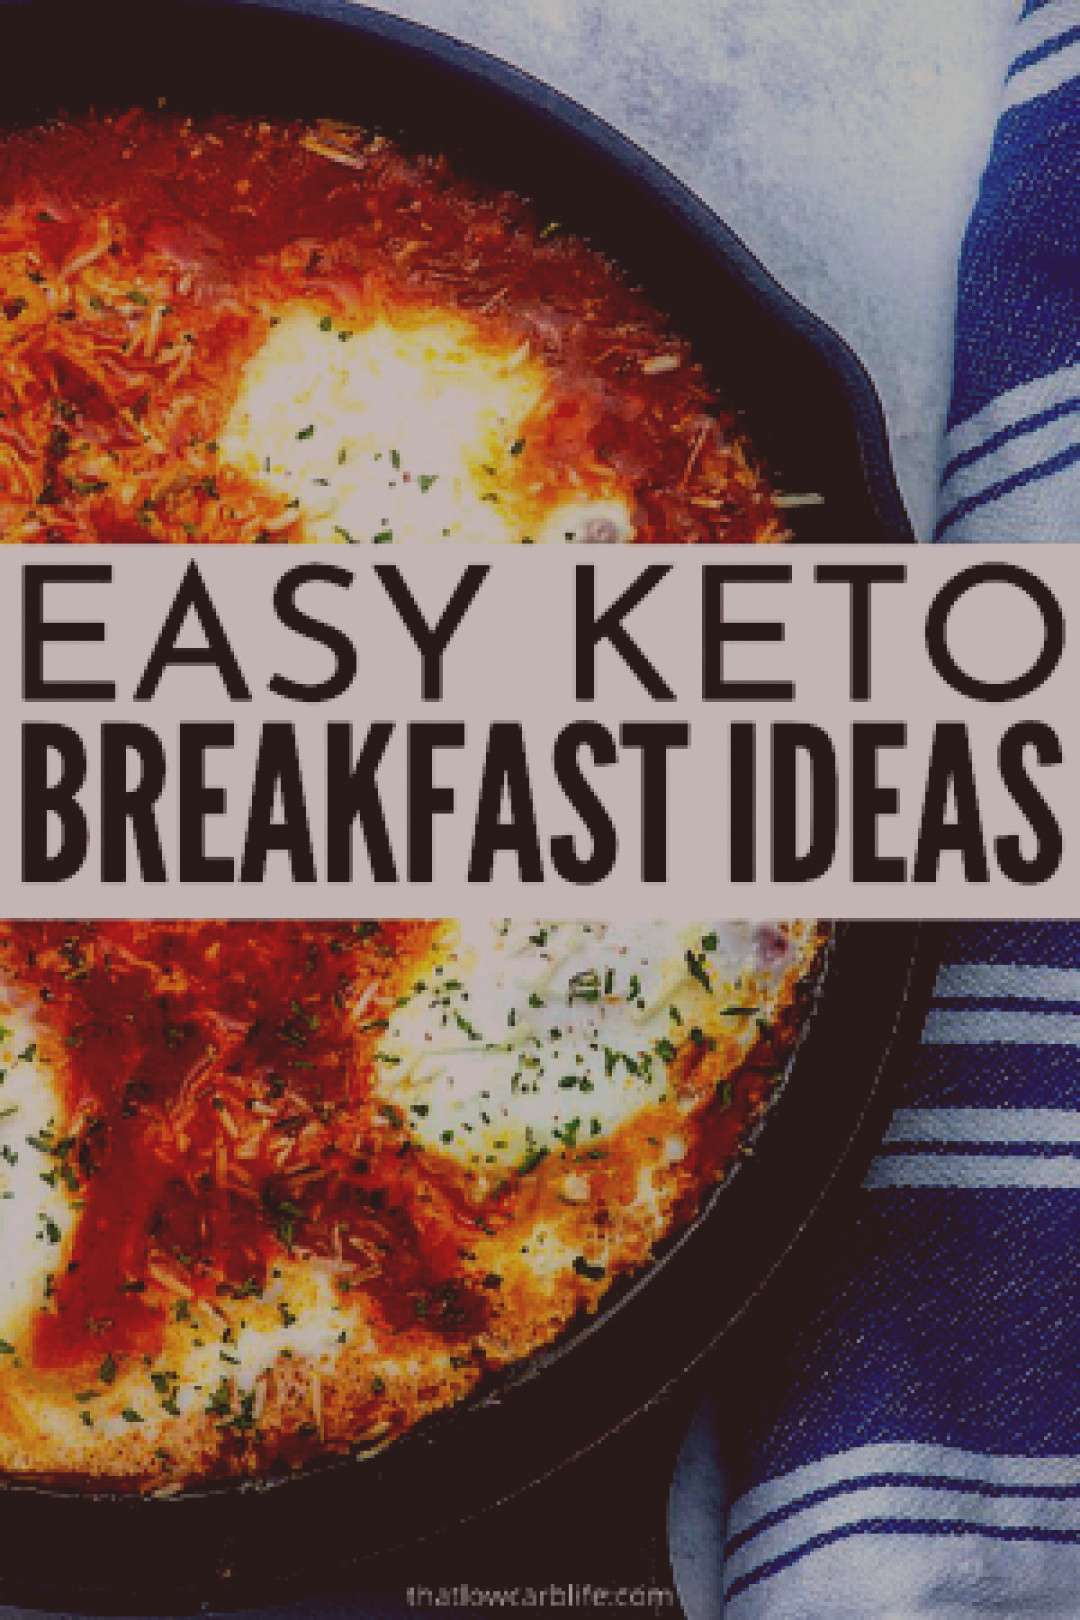 Keto Breakfasts eBook! Easy Keto Breakfast Ideas that will fill you up and fuel your body. You will